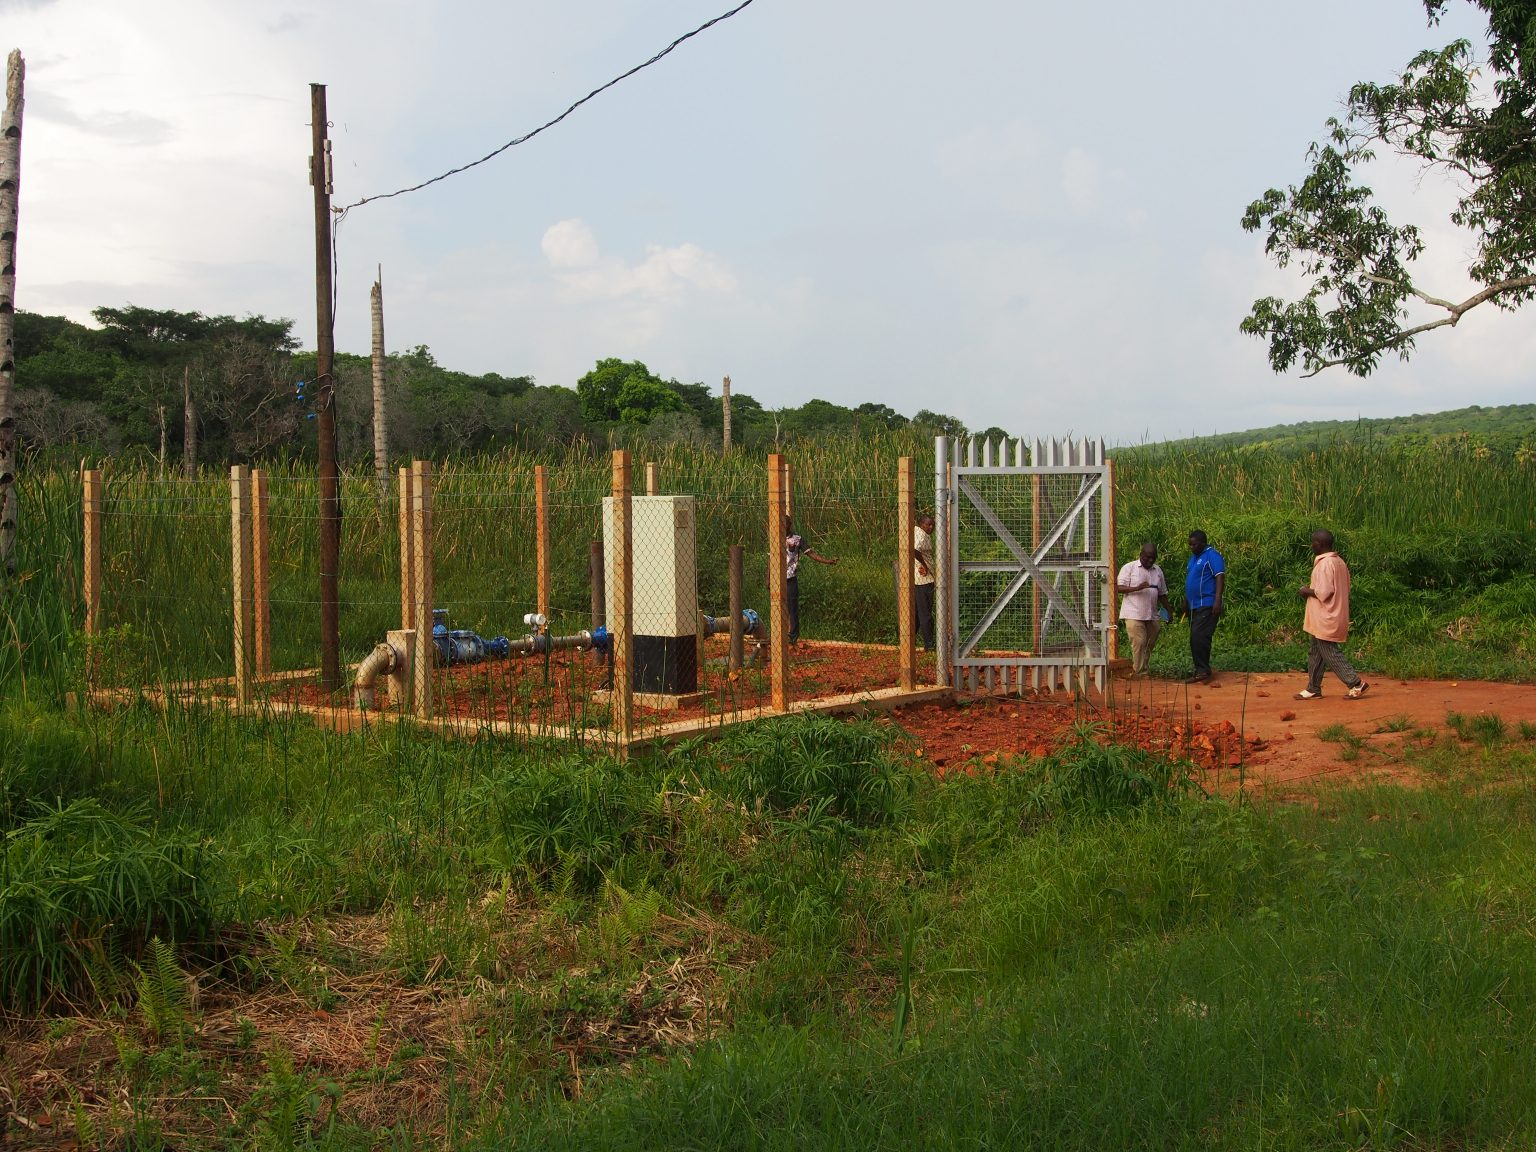 Upping the flow: Phase 1 water supply upgrades in Tanzania's Makonde Plateau close to completion